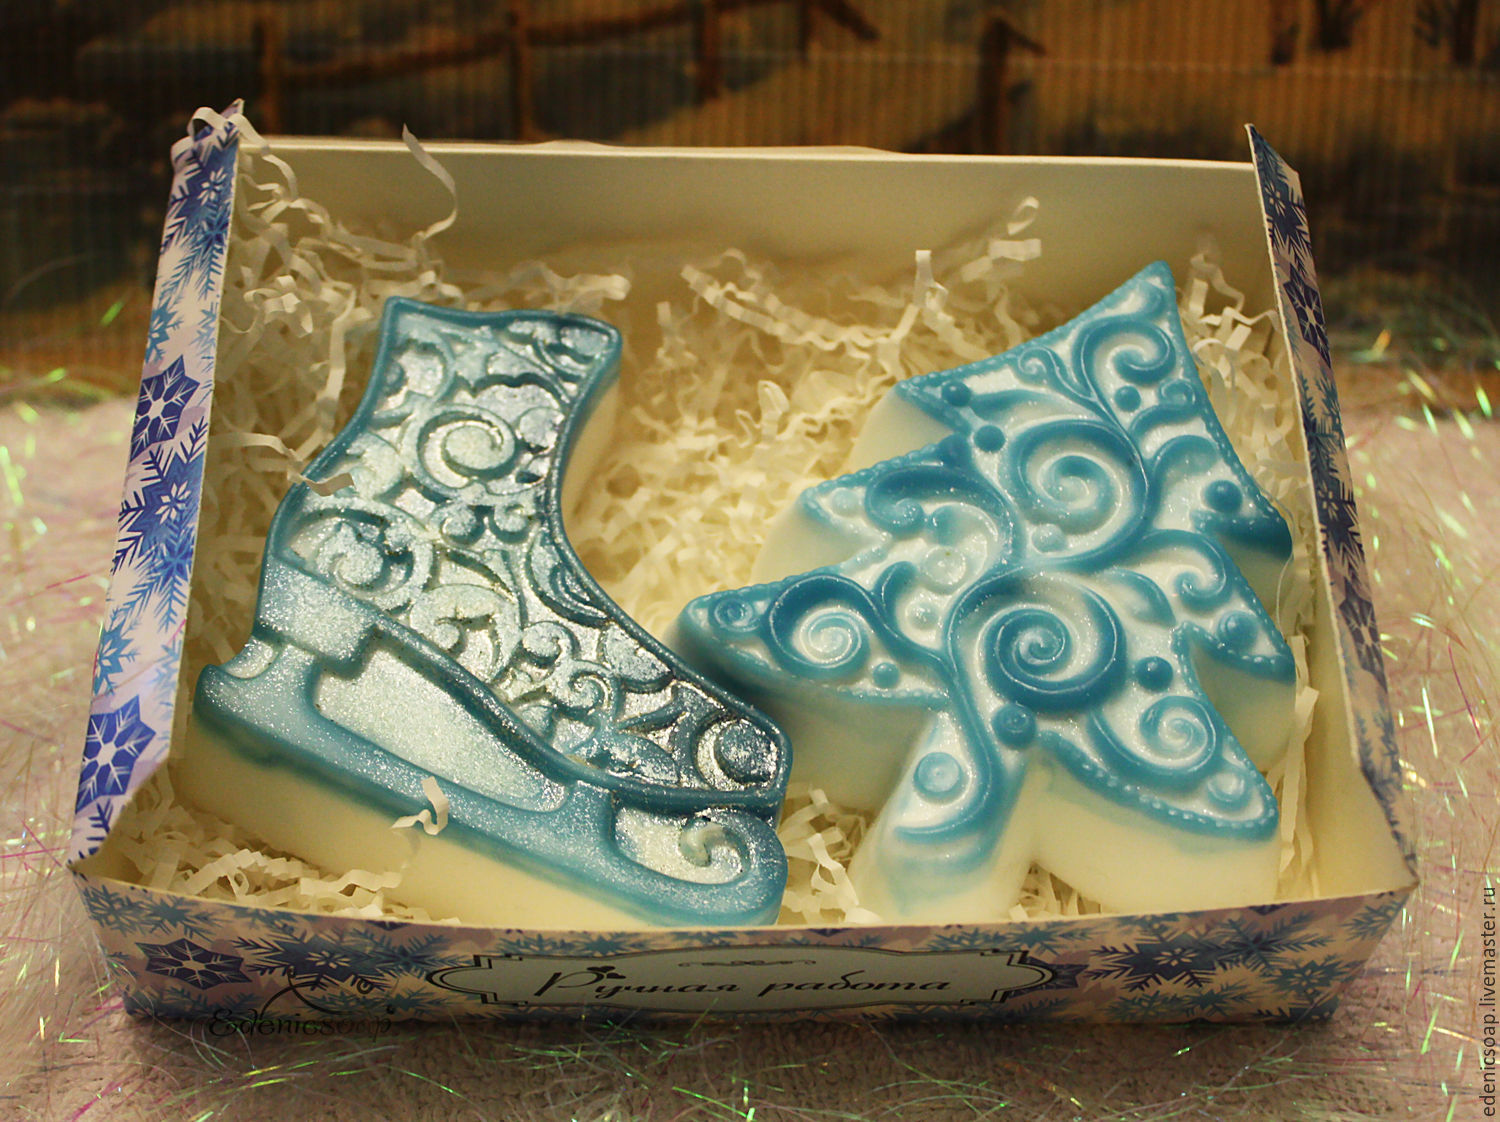 Christmas set of handmade soap. Winter. Christmas gifts.Edenicsoap.